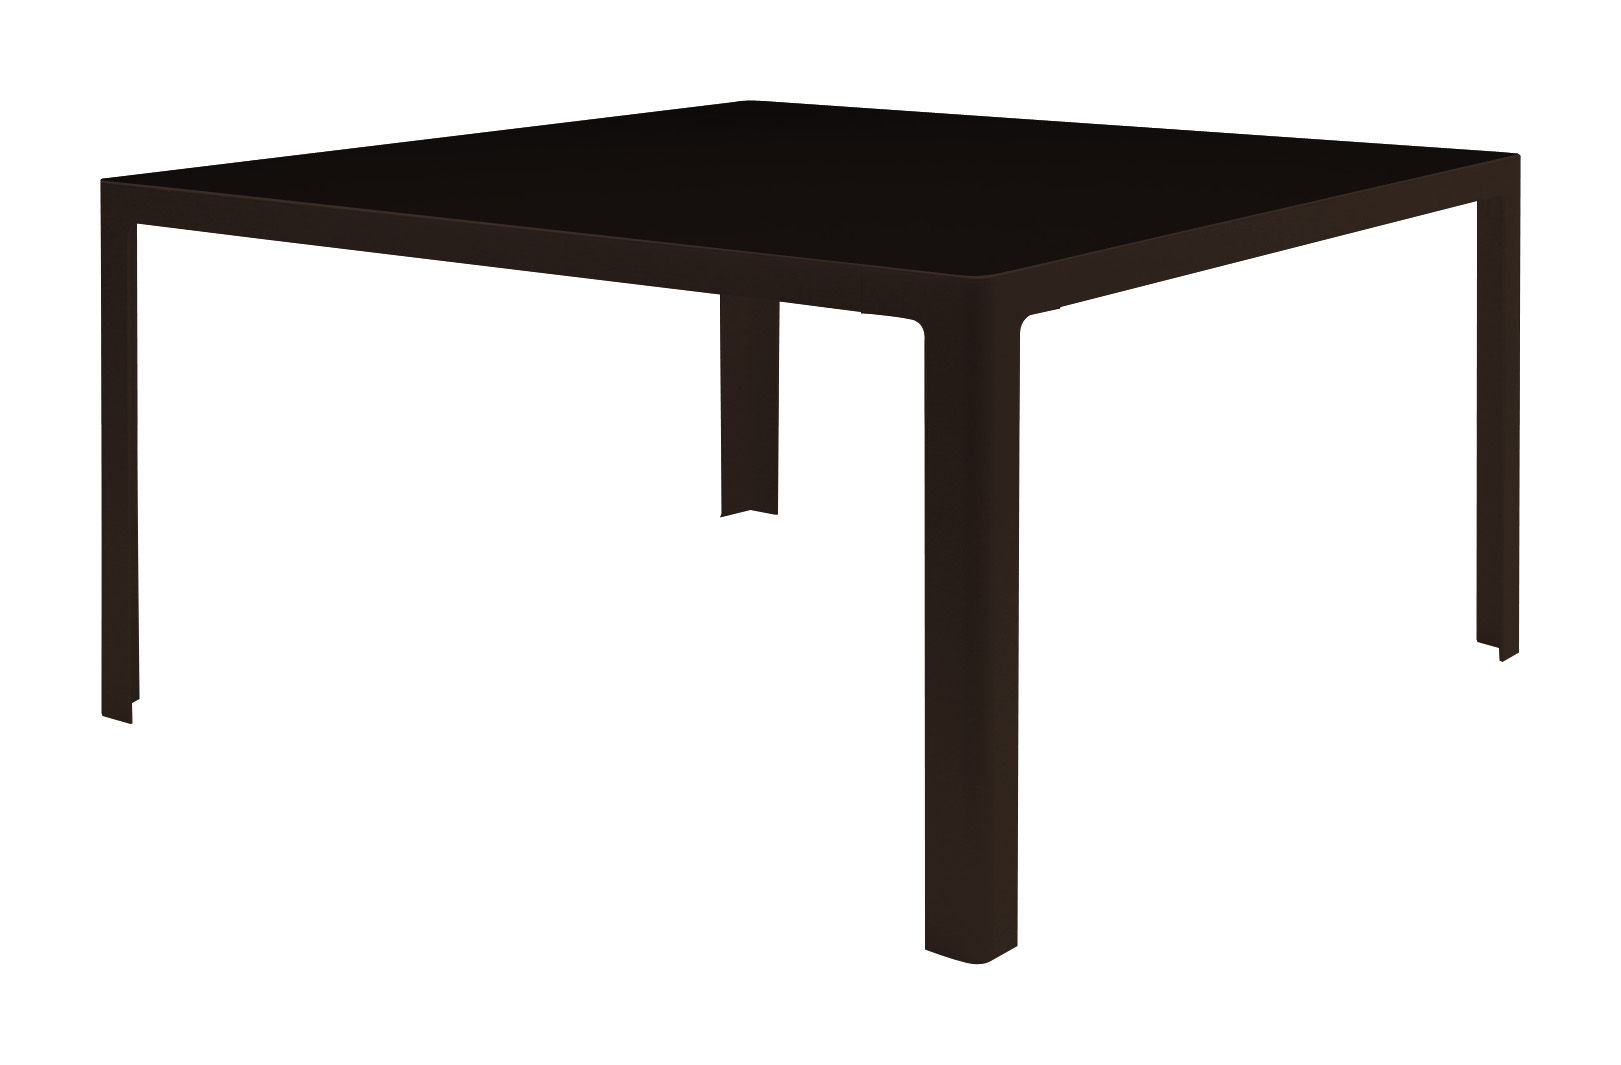 table metisse verre 140 x 140 cm plateau noir structure noir cuivr zeus. Black Bedroom Furniture Sets. Home Design Ideas